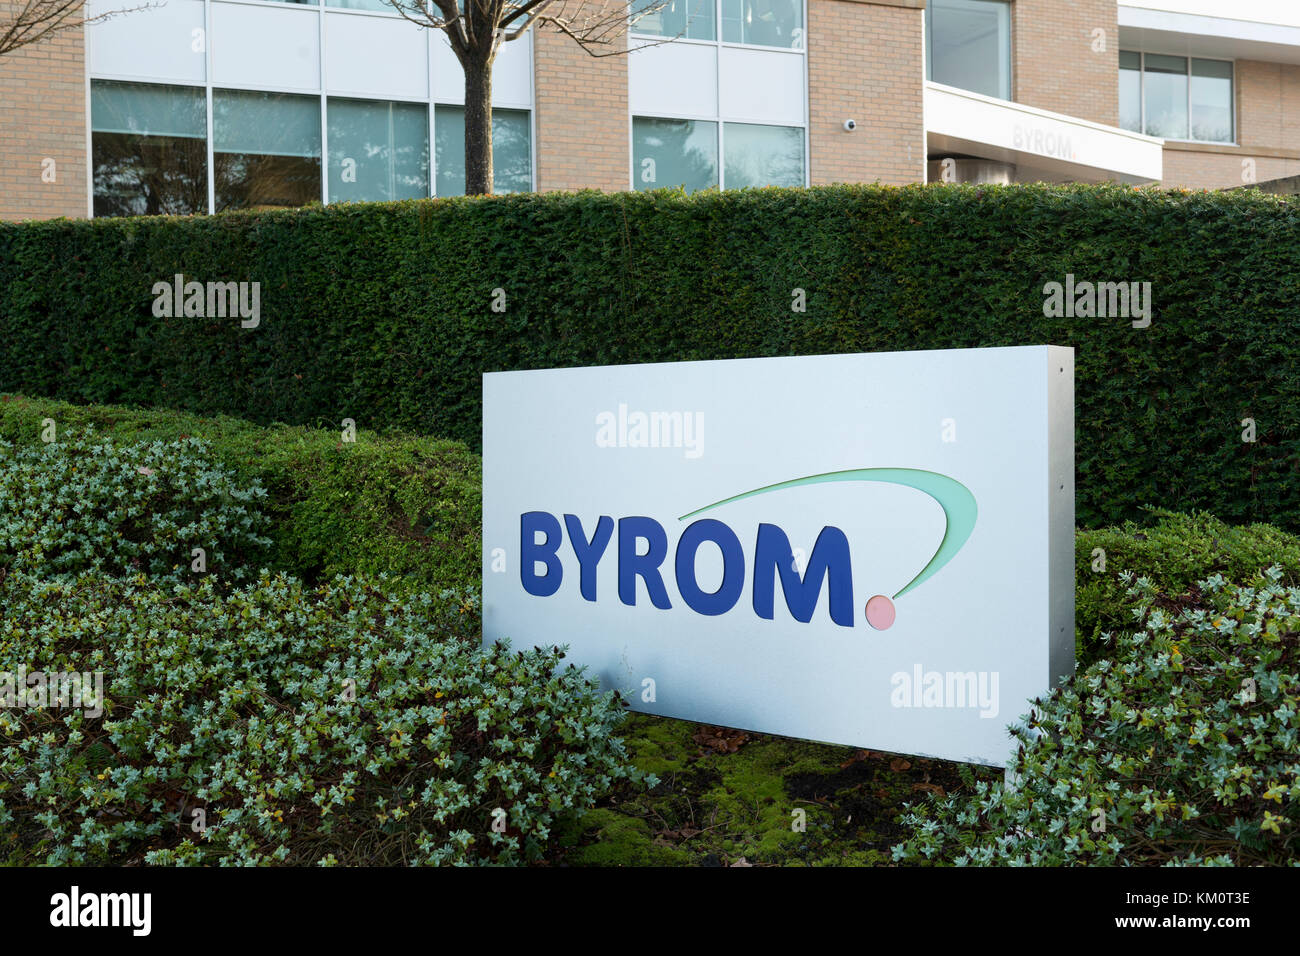 Byrom Plc is home of MATCH Ticketing, FIFA's ticketing service provider. This Byrom office is located in Cheadle, - Stock Image